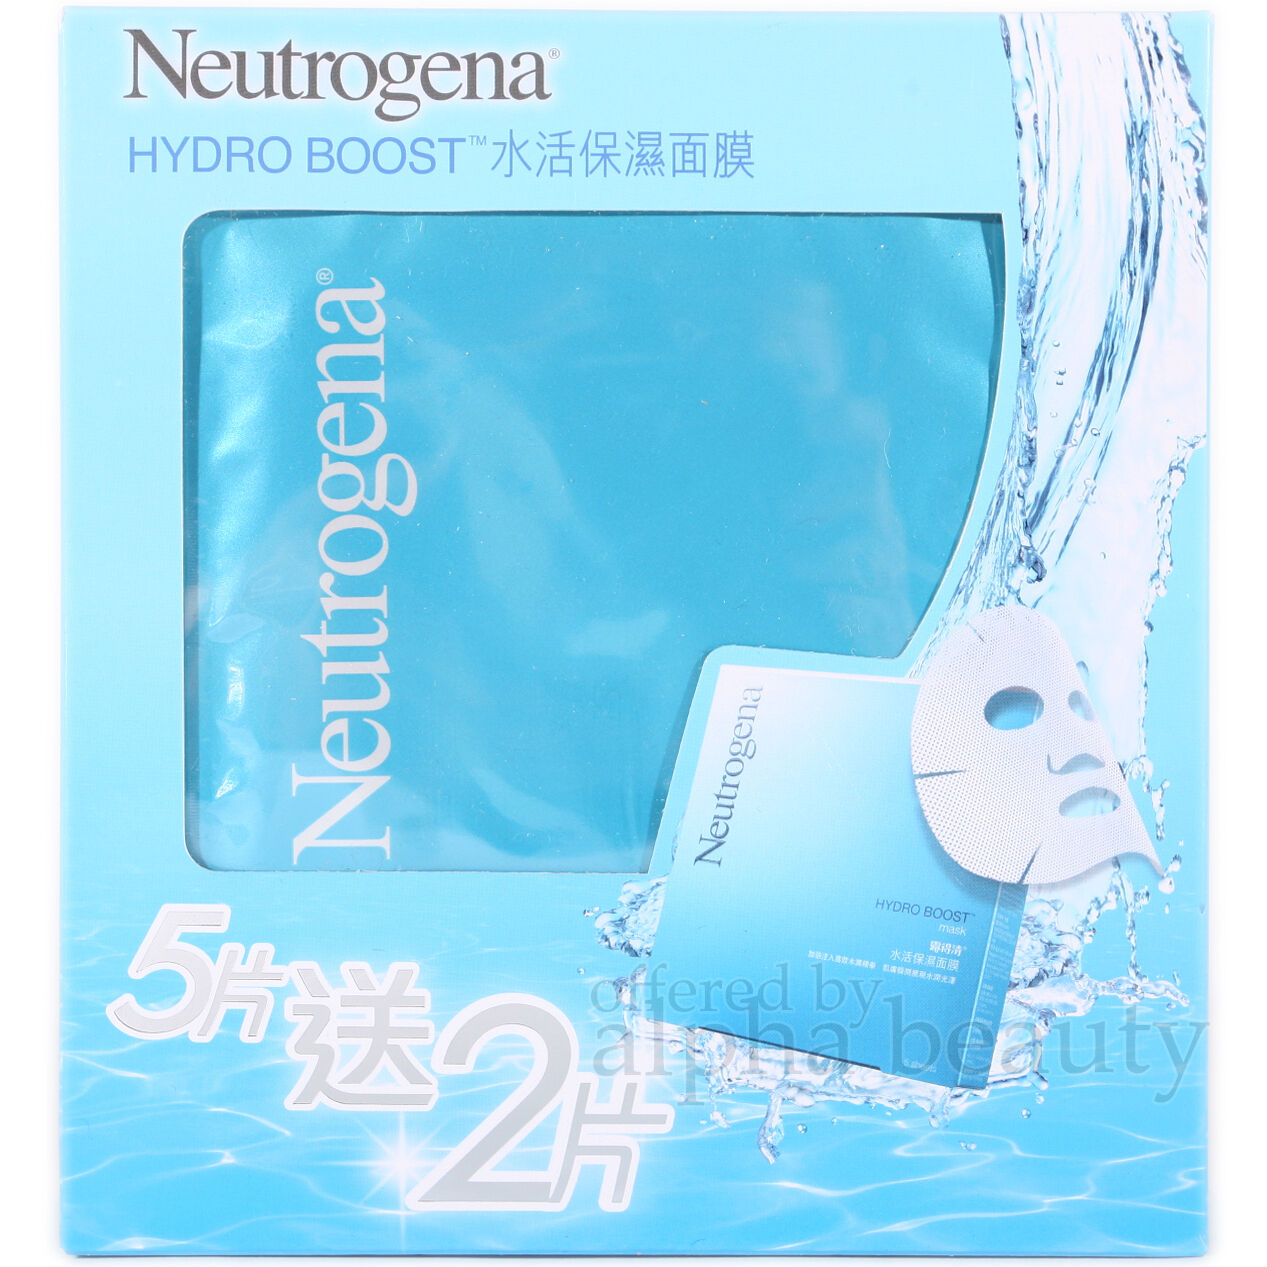 Neutrogena Hydro Boost Intensive Hydrating Facial Mask (7 sheet) Box Set • $14.95